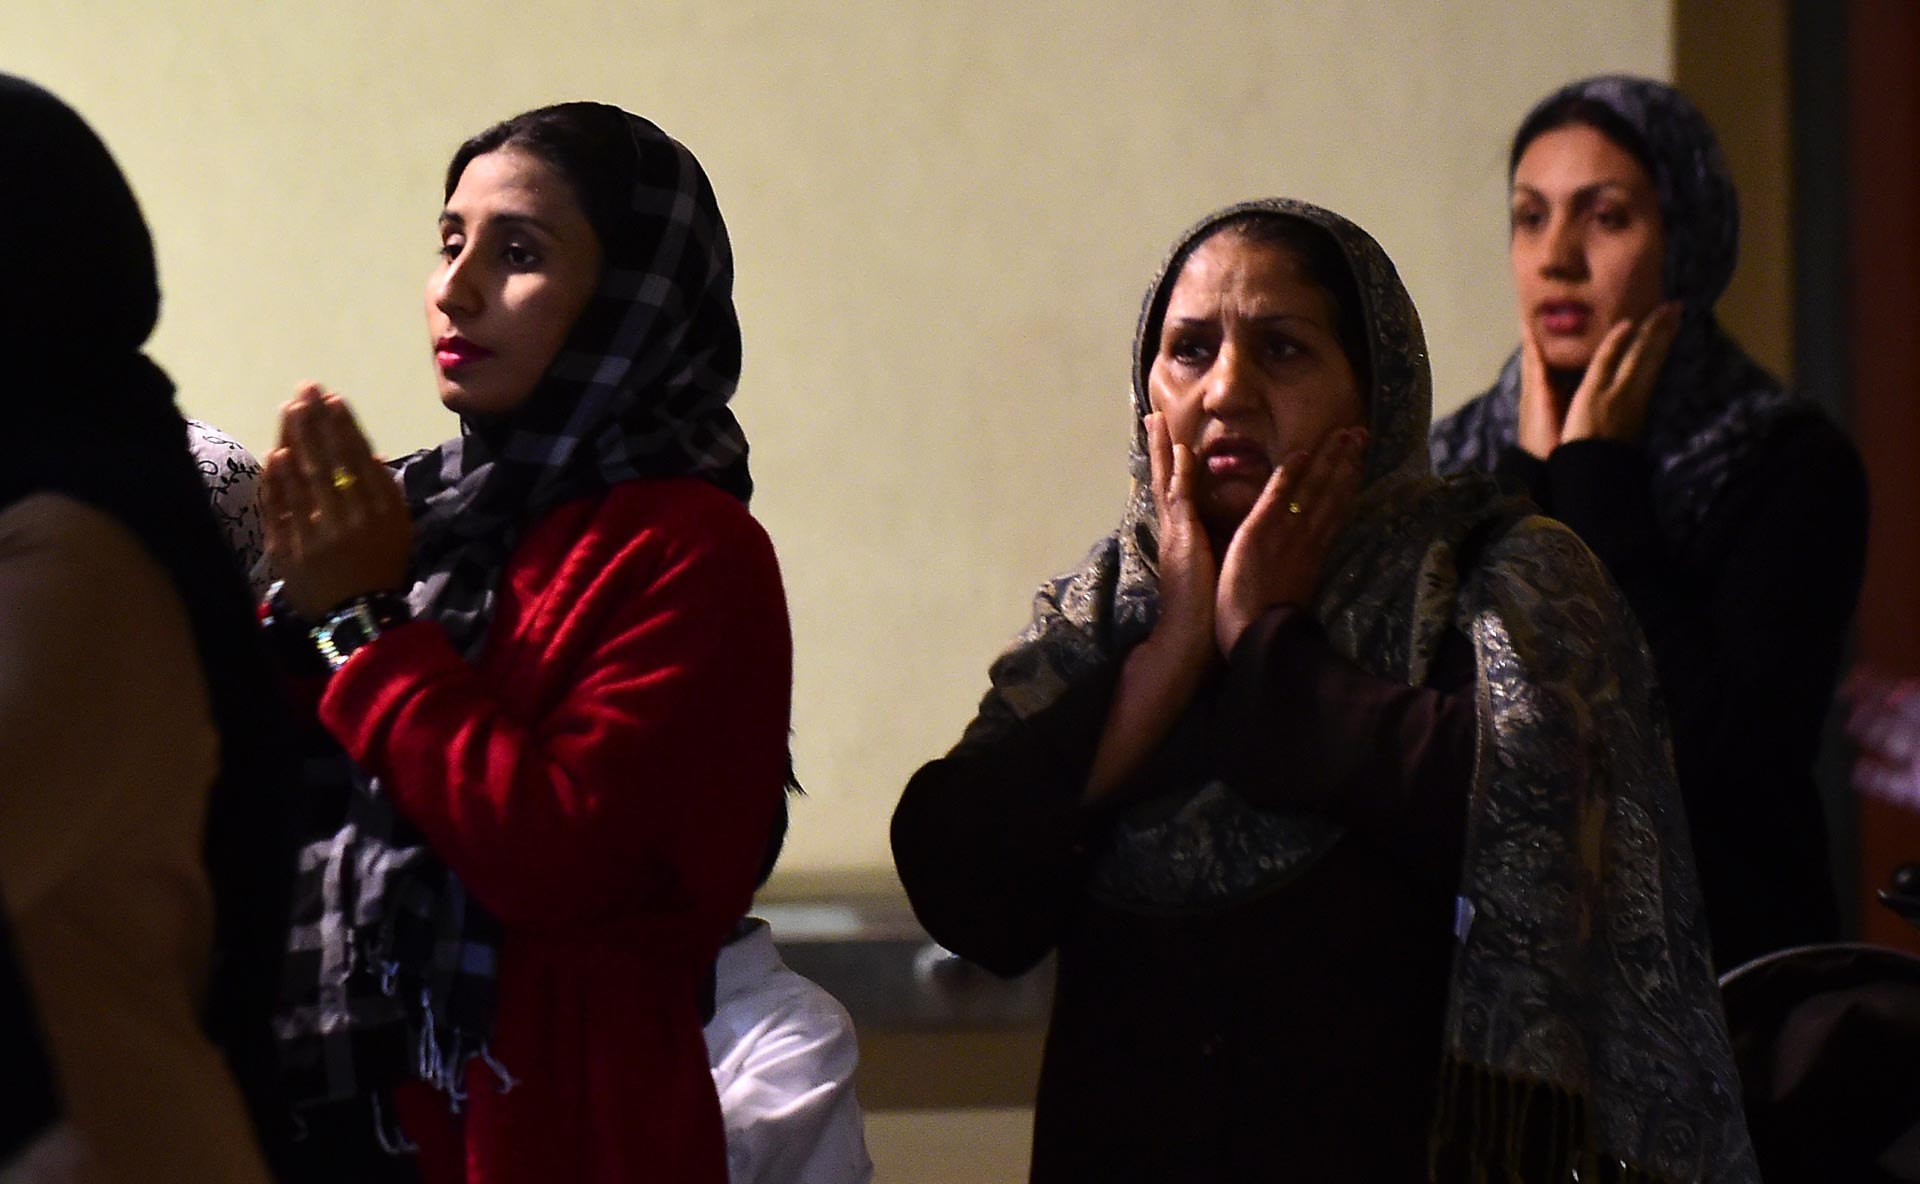 Muslim women gesture in prayer while congregating outside the Baitul Hameed Mosque in Chino on December 3, 2015. People attended a prayer vigil there to commemorate lives lost a day after the massacre in San Bernardino.